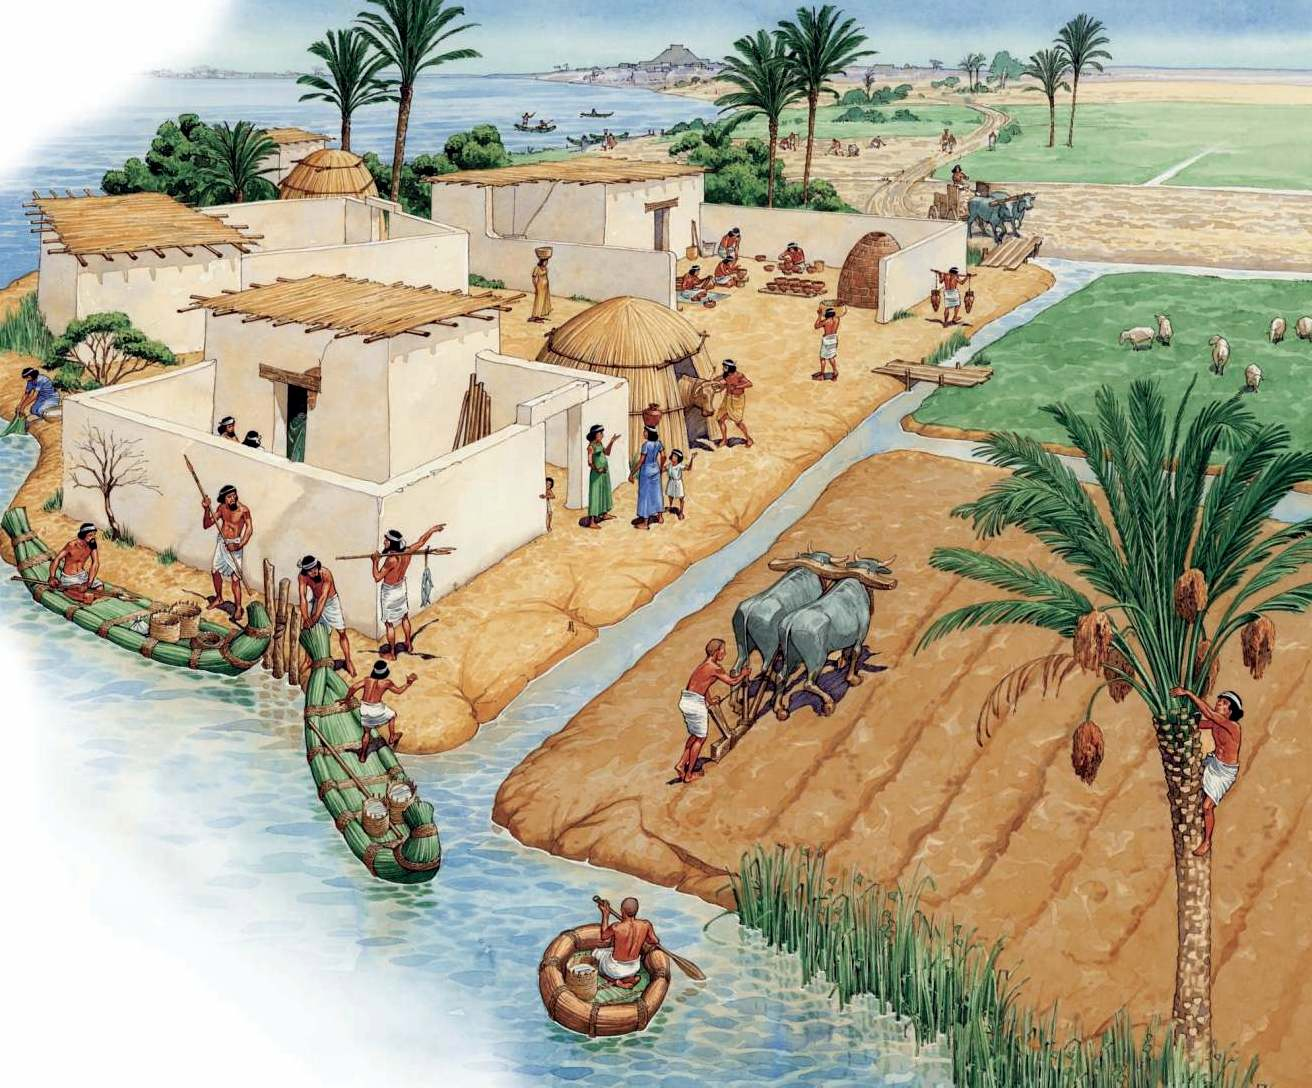 occupation and trade of mesopotamian civilization The main occupation of the mesopotamians was agriculture the euphrates and tigris rivers were their main sources of water supplyflooding was irregular so they built an elaborate and highly.